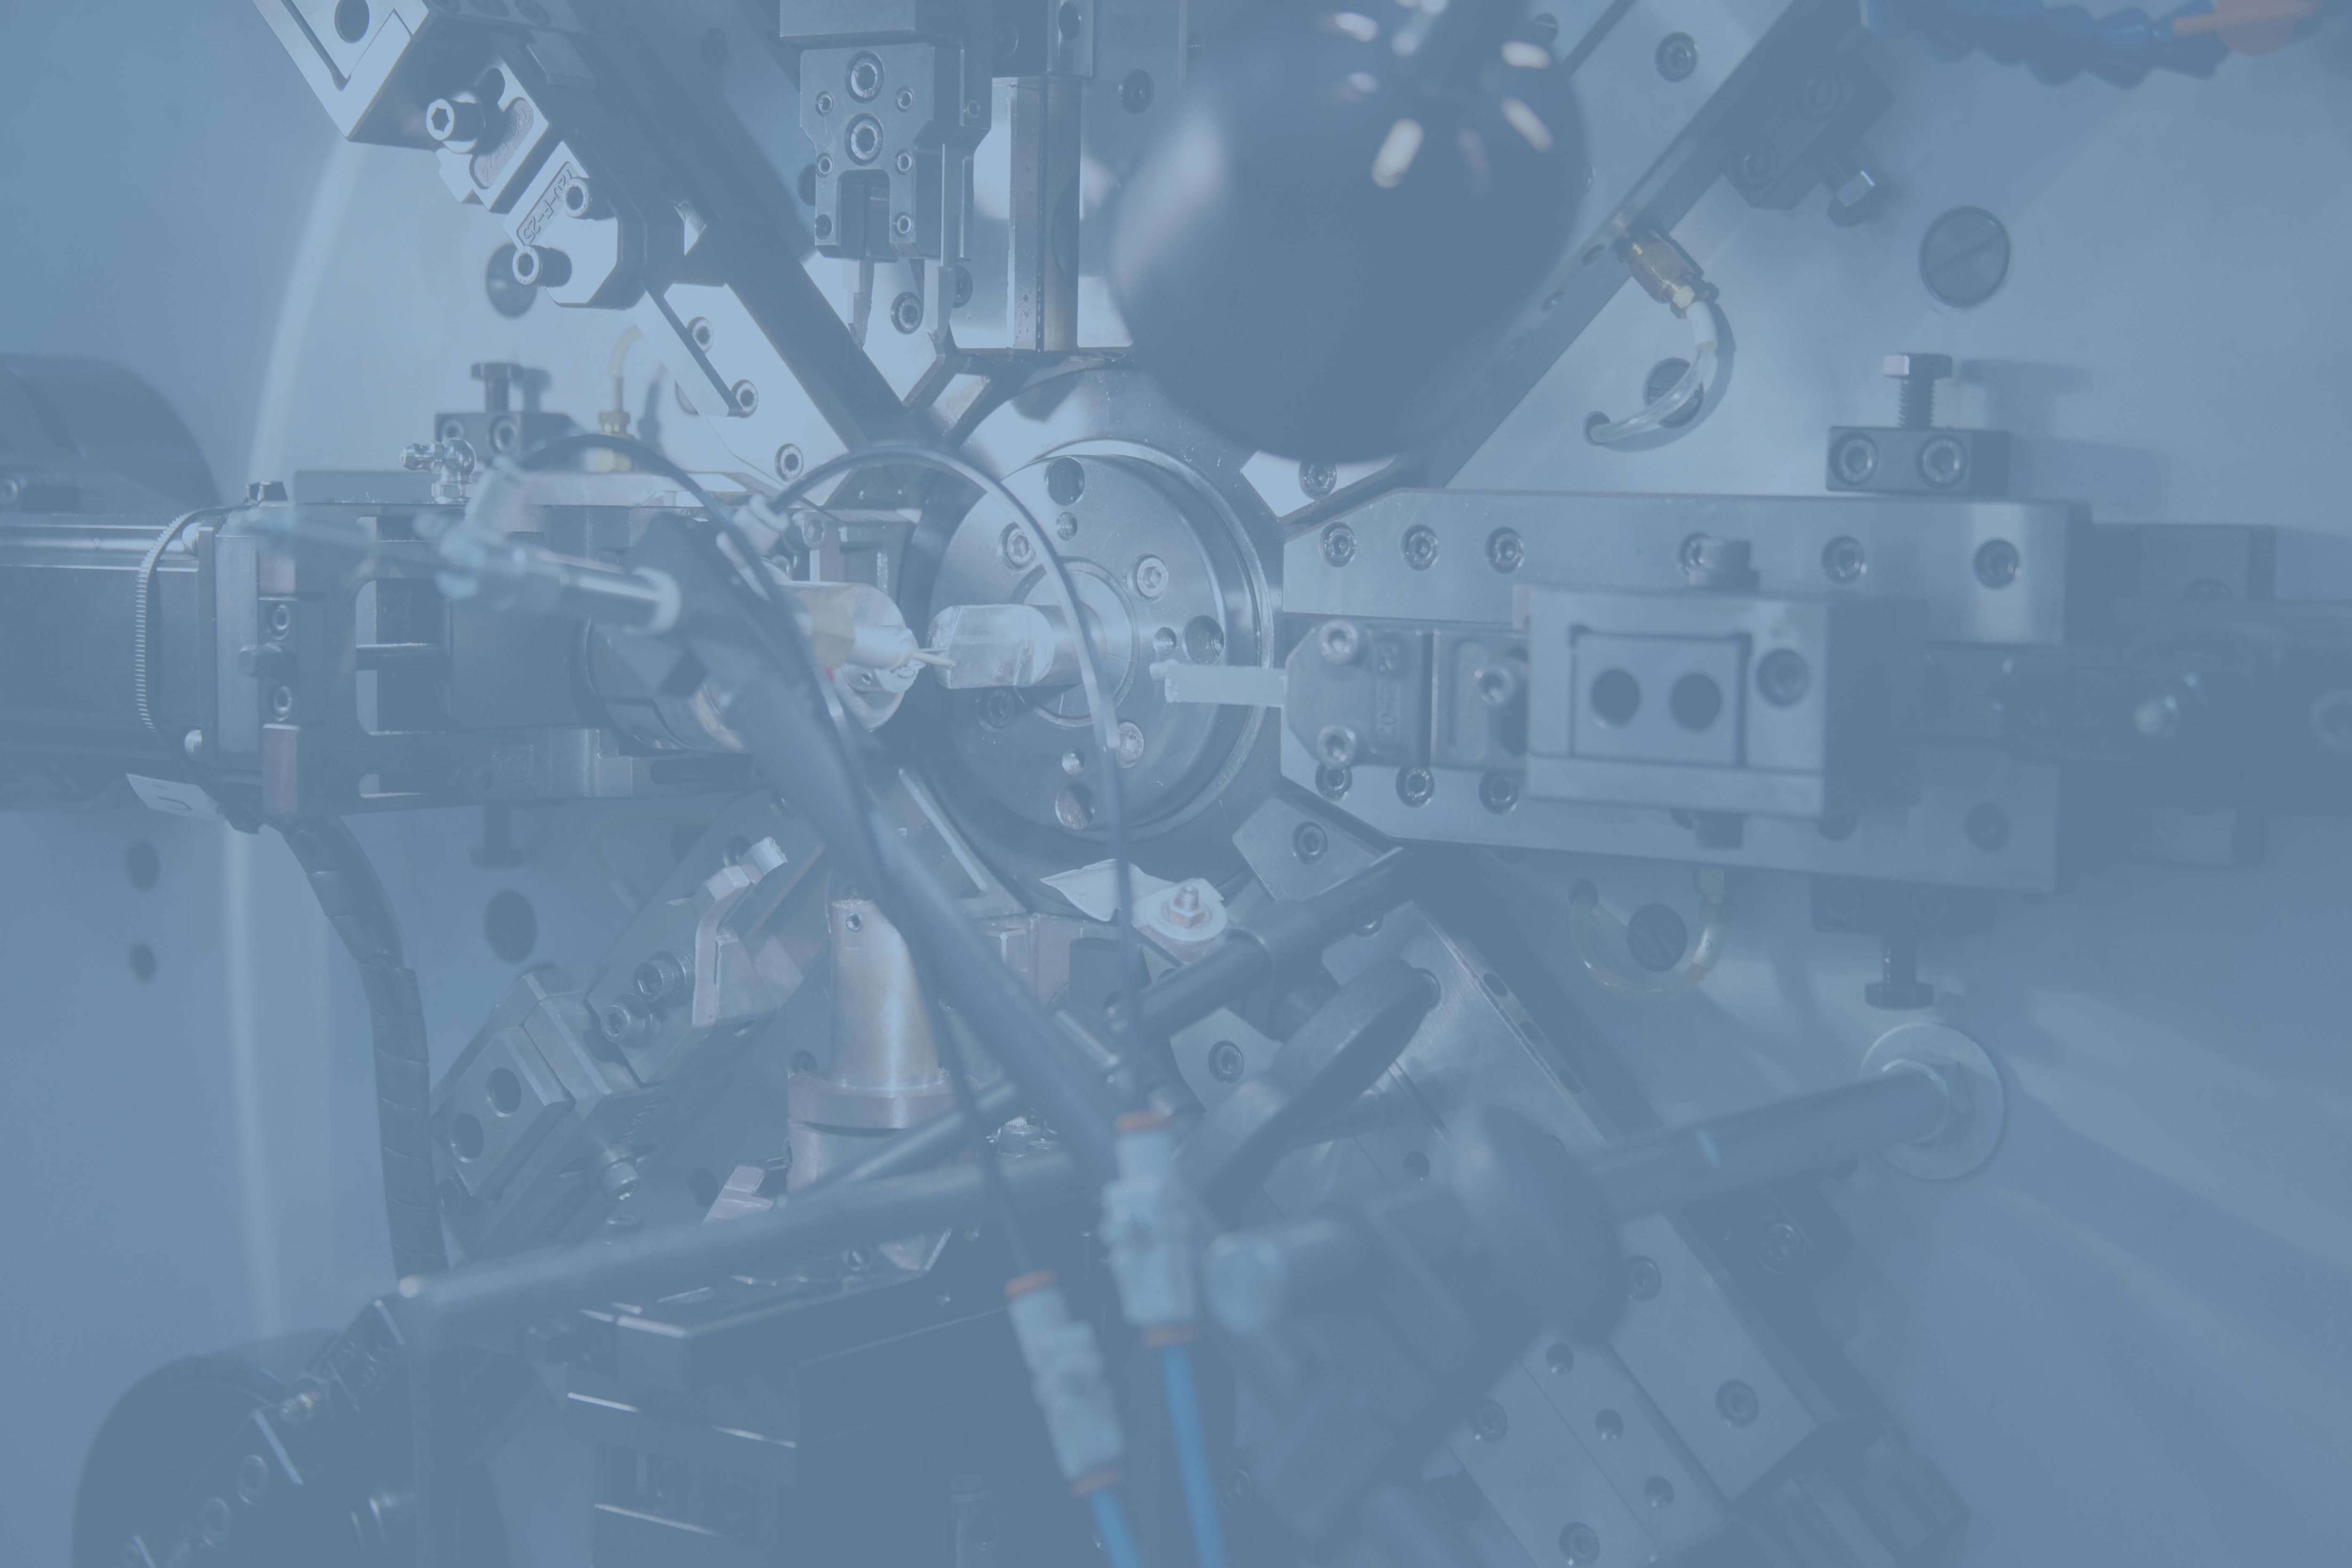 technical machine with a blue overlay